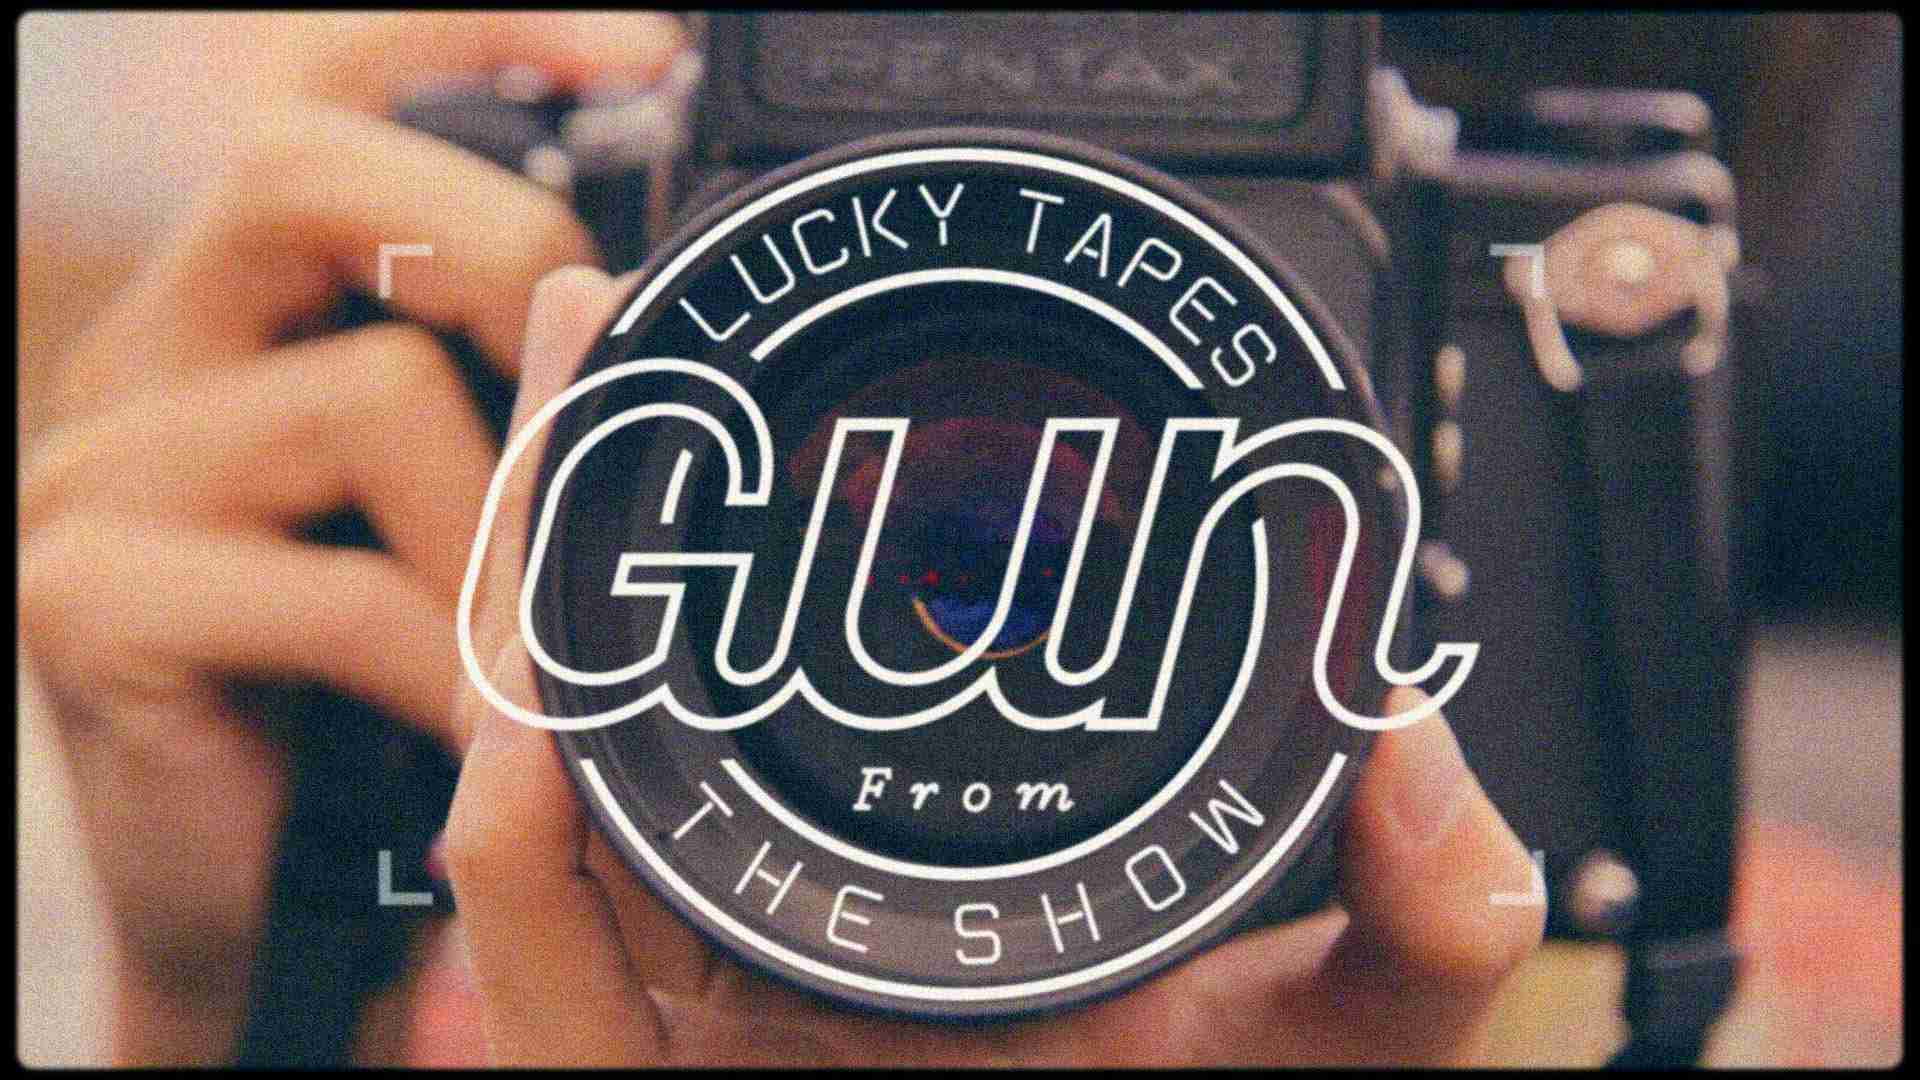 LUCKY TAPES - Gun  (Official Music Video) - YouTube